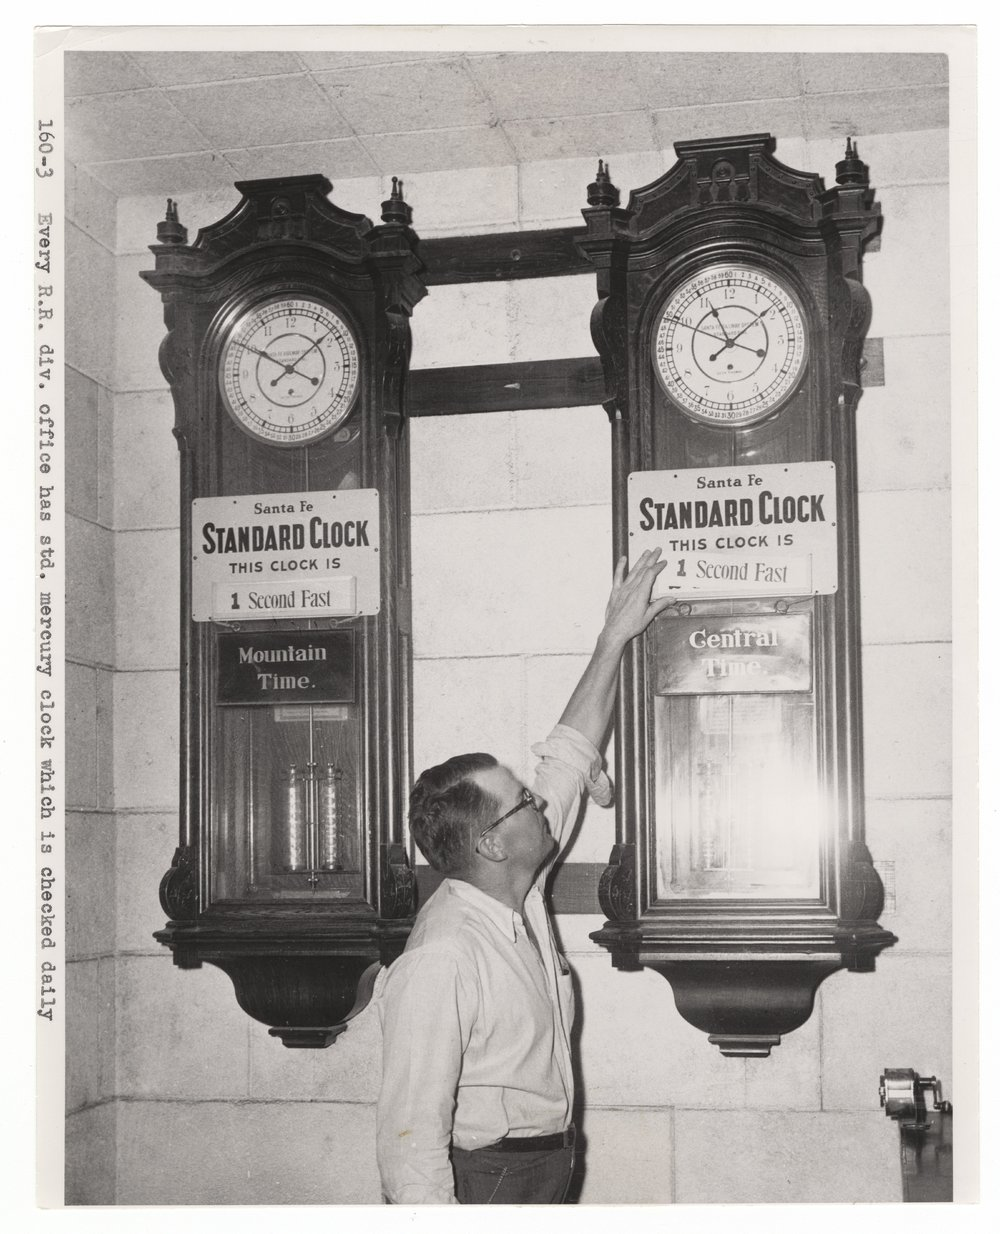 Standard mercury clocks in Atchison, Topeka & Santa Fe Railway's division offices - 1